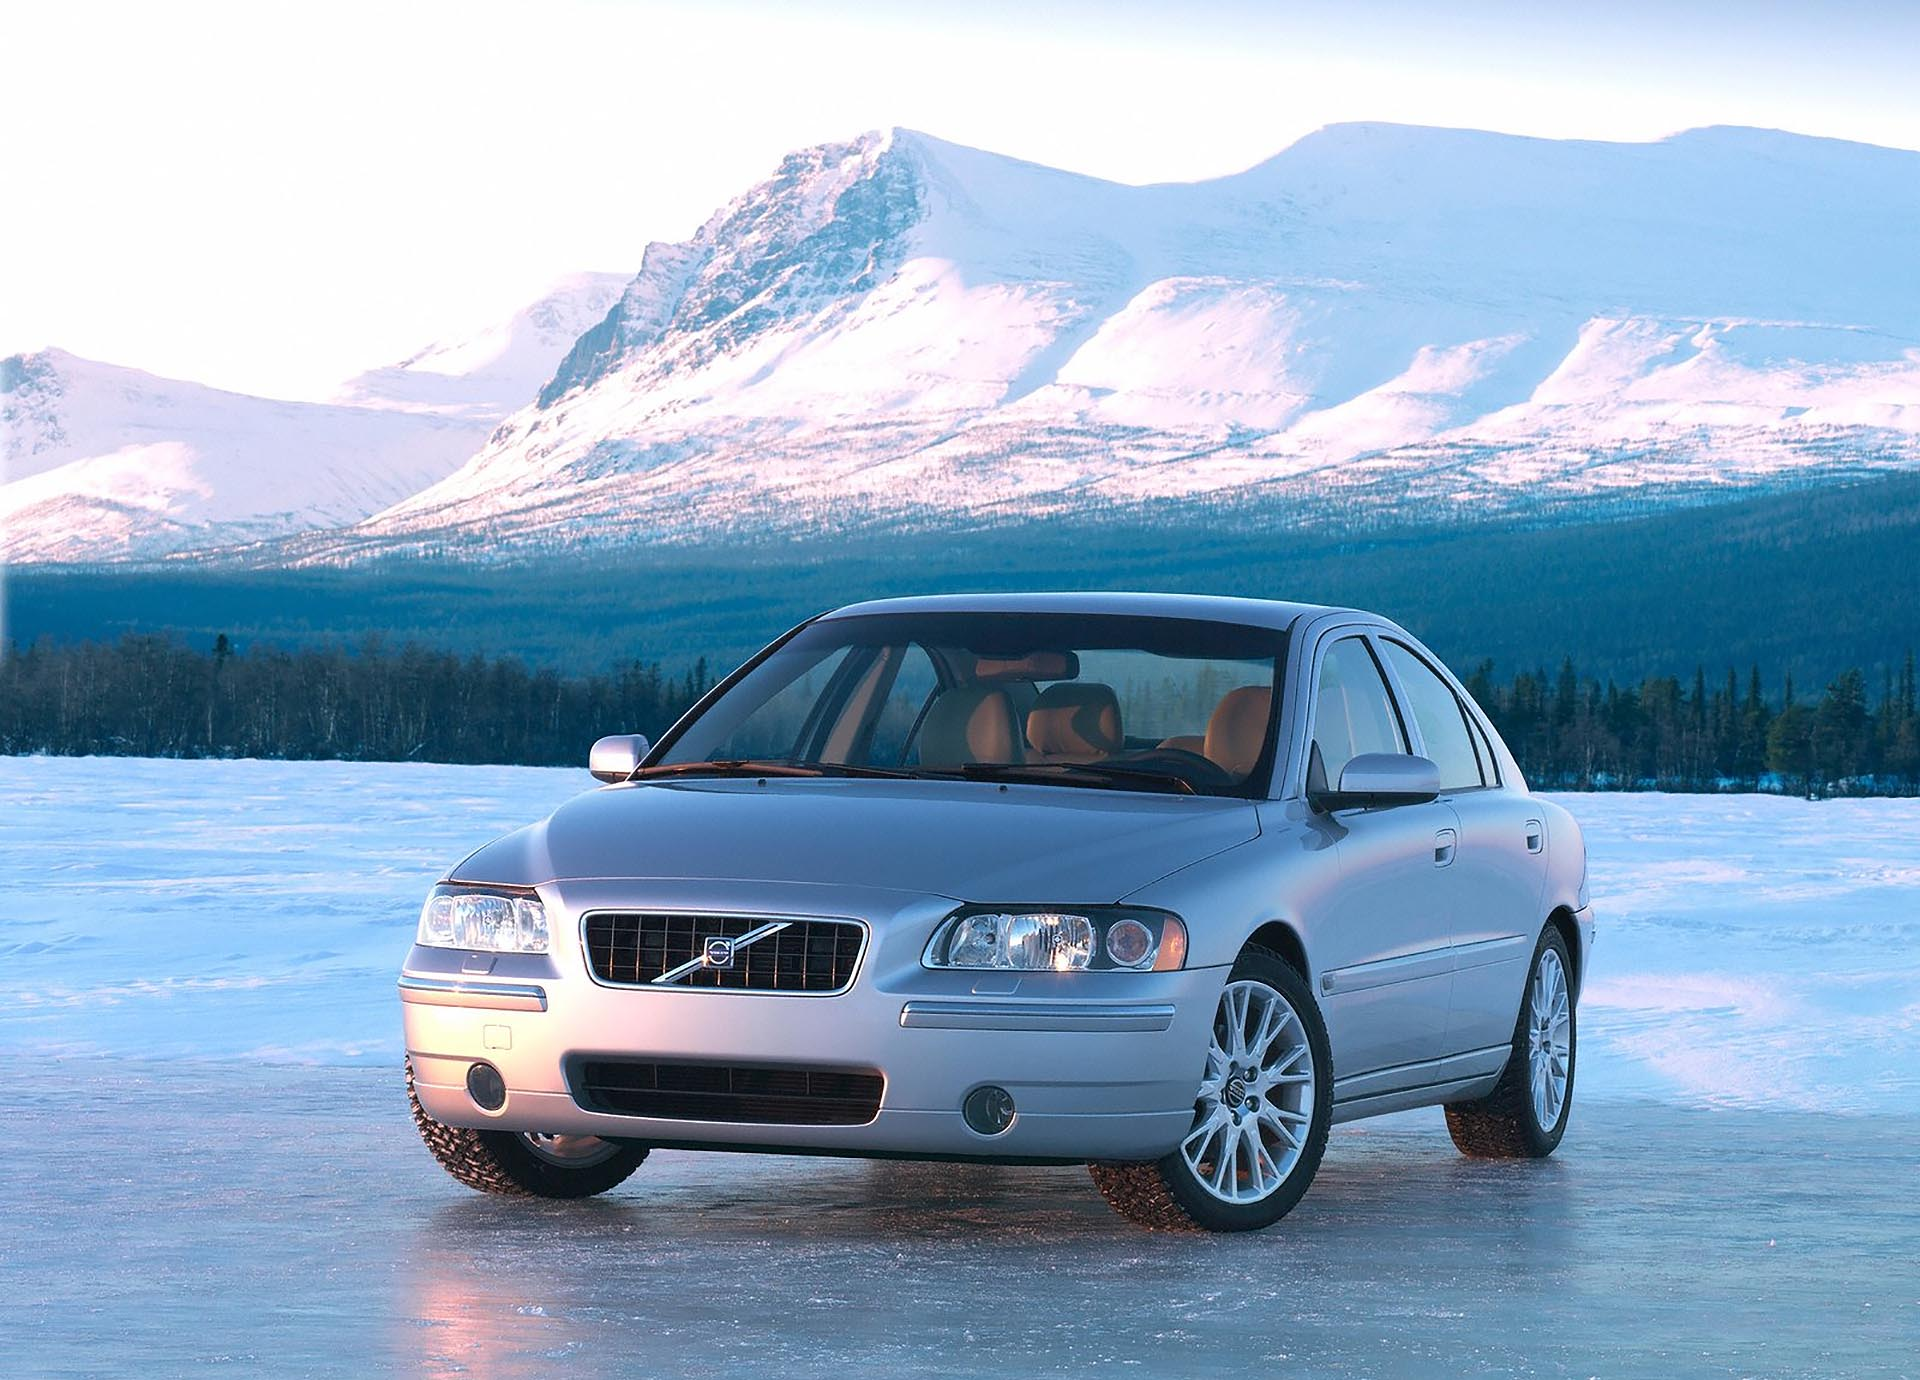 03_Volvo-S60 2.5t awd front